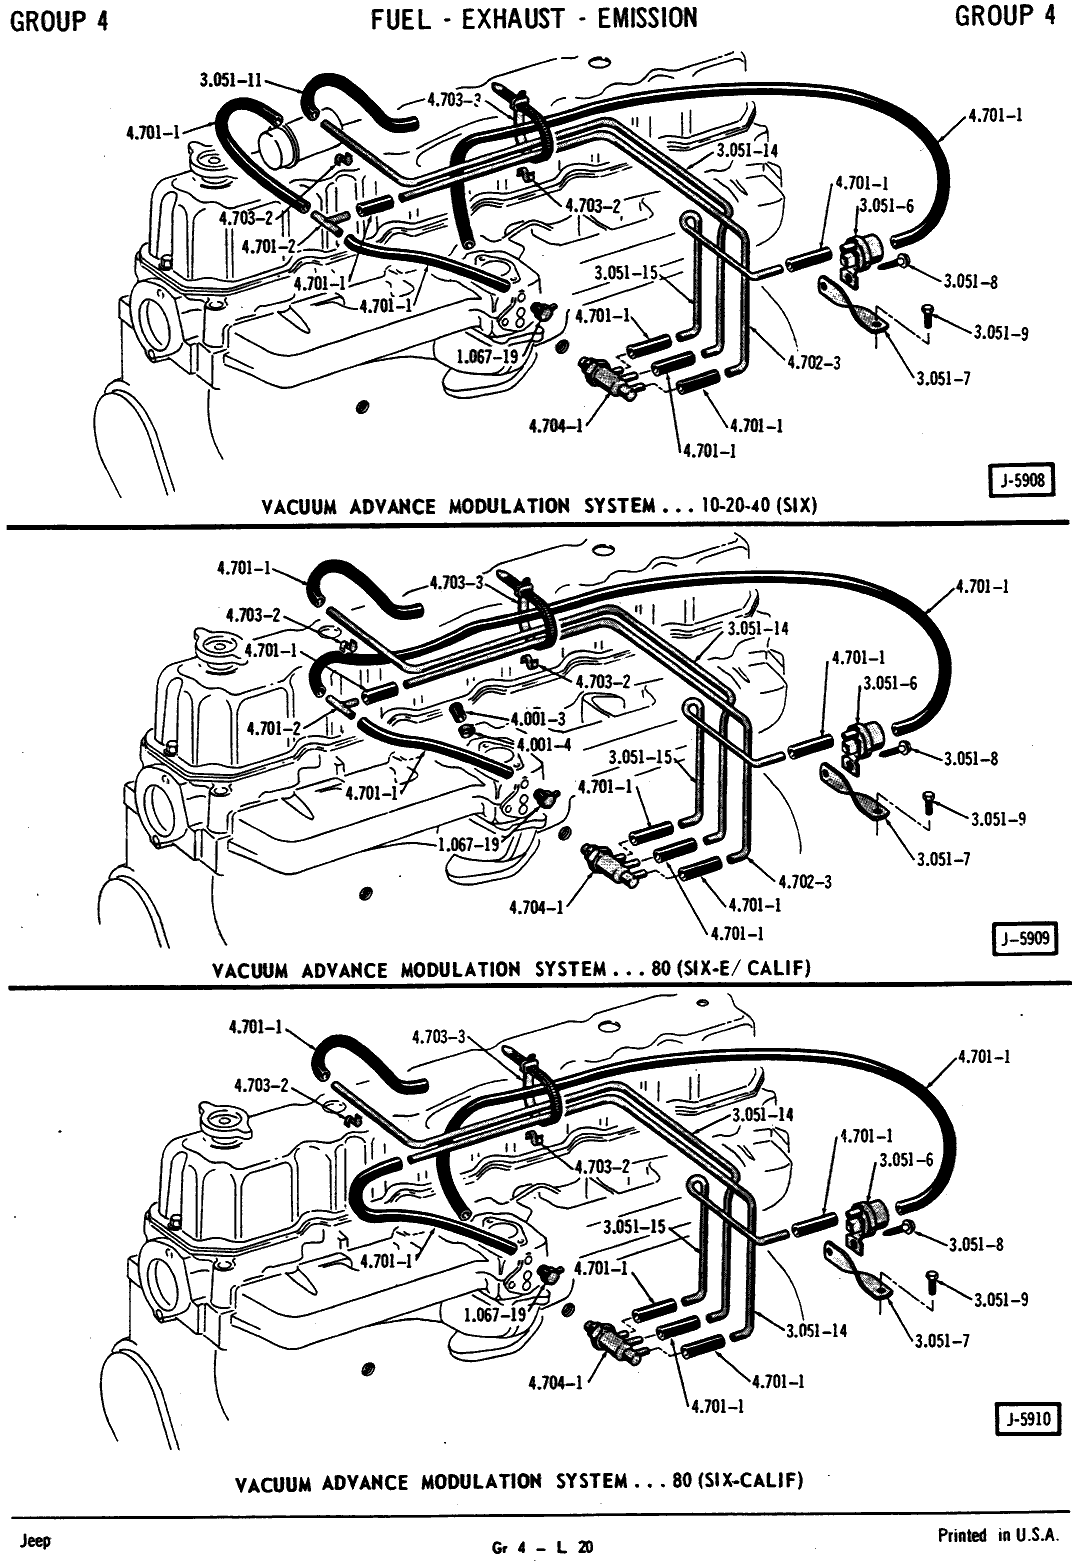 jeep xj distributor diagram wiring diagram insidejeep distributor parts diagram wiring diagram toolbox jeep xj distributor [ 1076 x 1561 Pixel ]